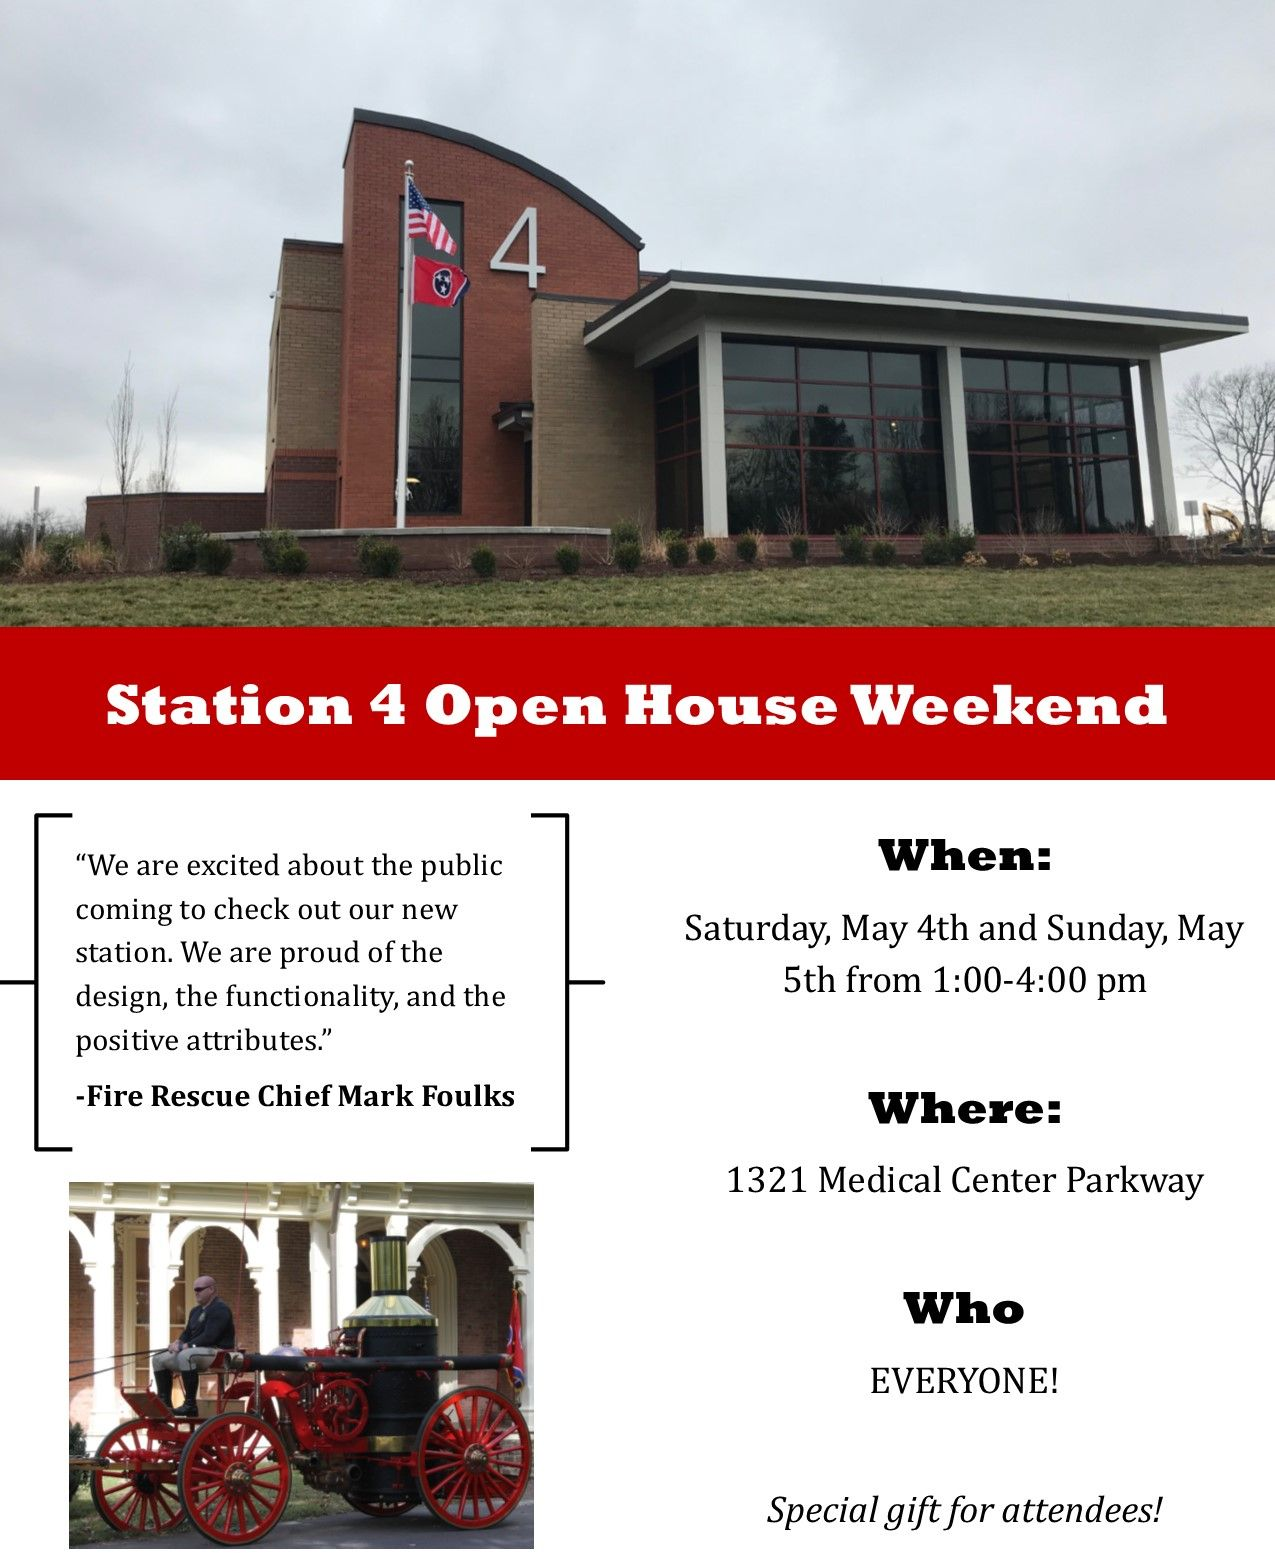 Station 4 Open House Public May 4 and 5